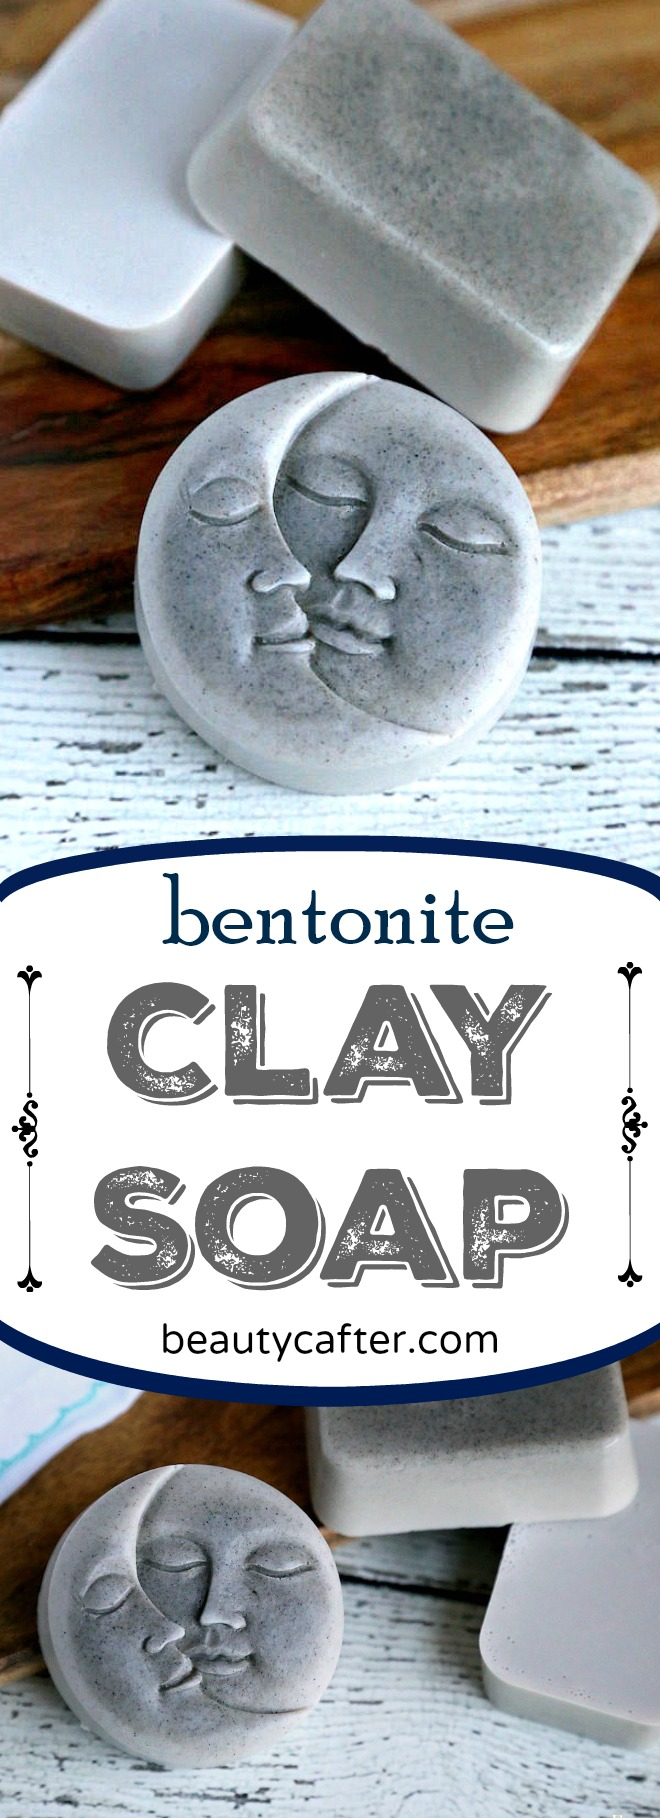 This Bentonite Clay Soap is great for the skin and has detoxification benefits as well. Thesimple melt and pour clay soap recipe isquite easy to make, even for someone who has never made soap before. #soap #clay #soapmaking #crafts #detox